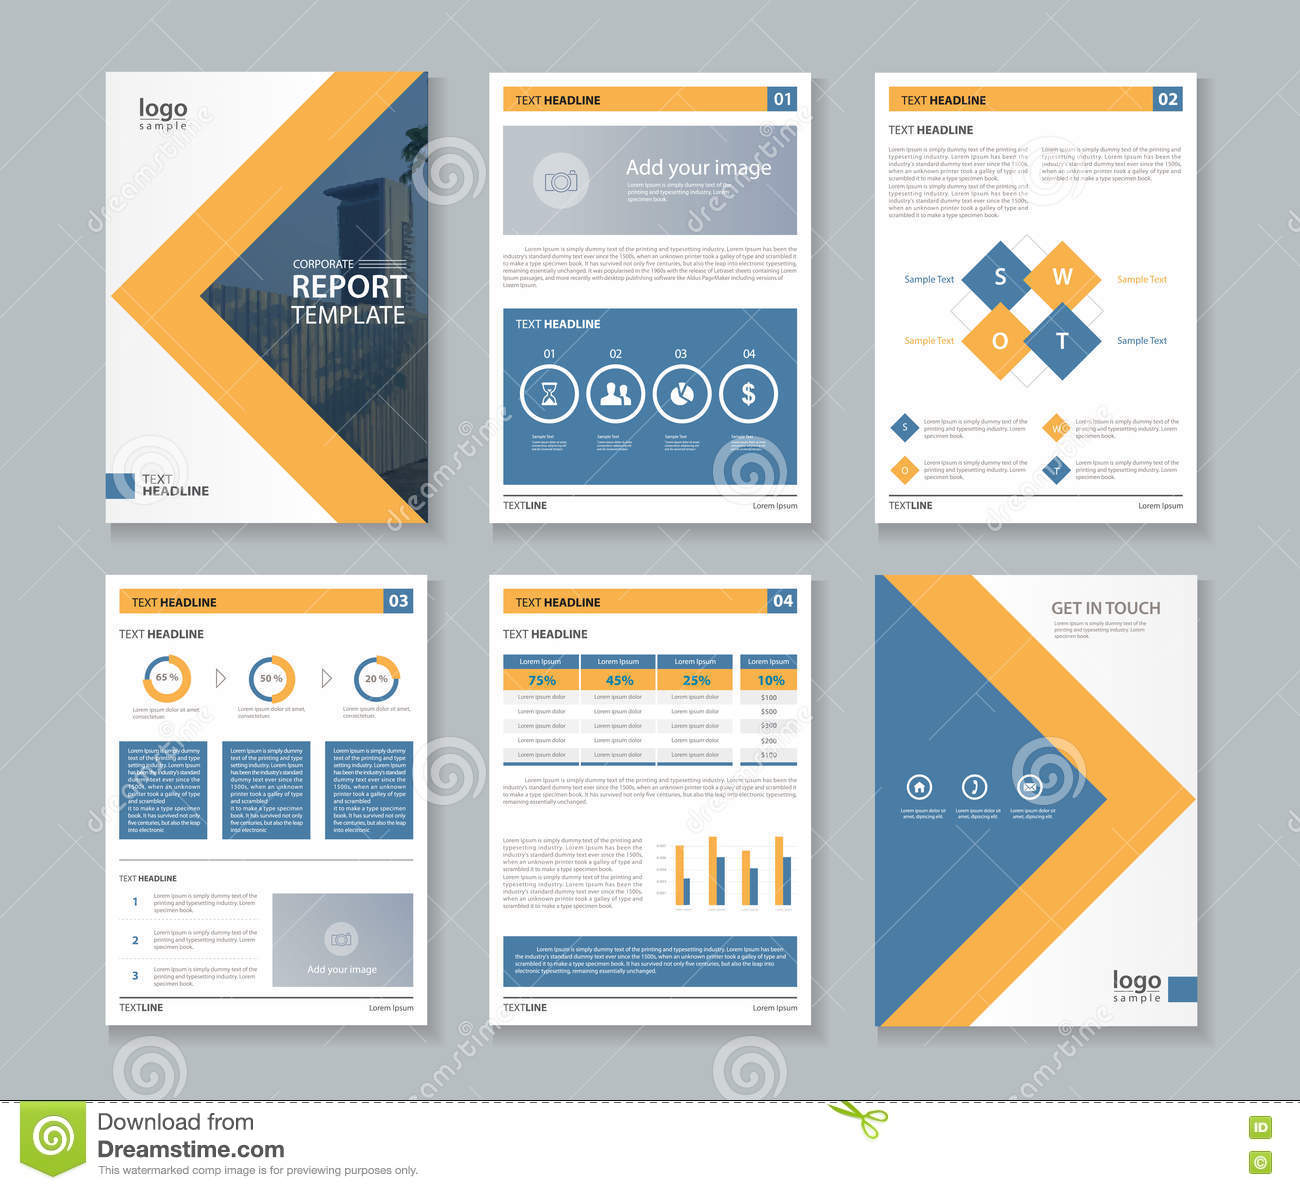 Business company profile report and brochure layout template stock download business company profile report and brochure layout template stock vector illustration of illustration wajeb Choice Image